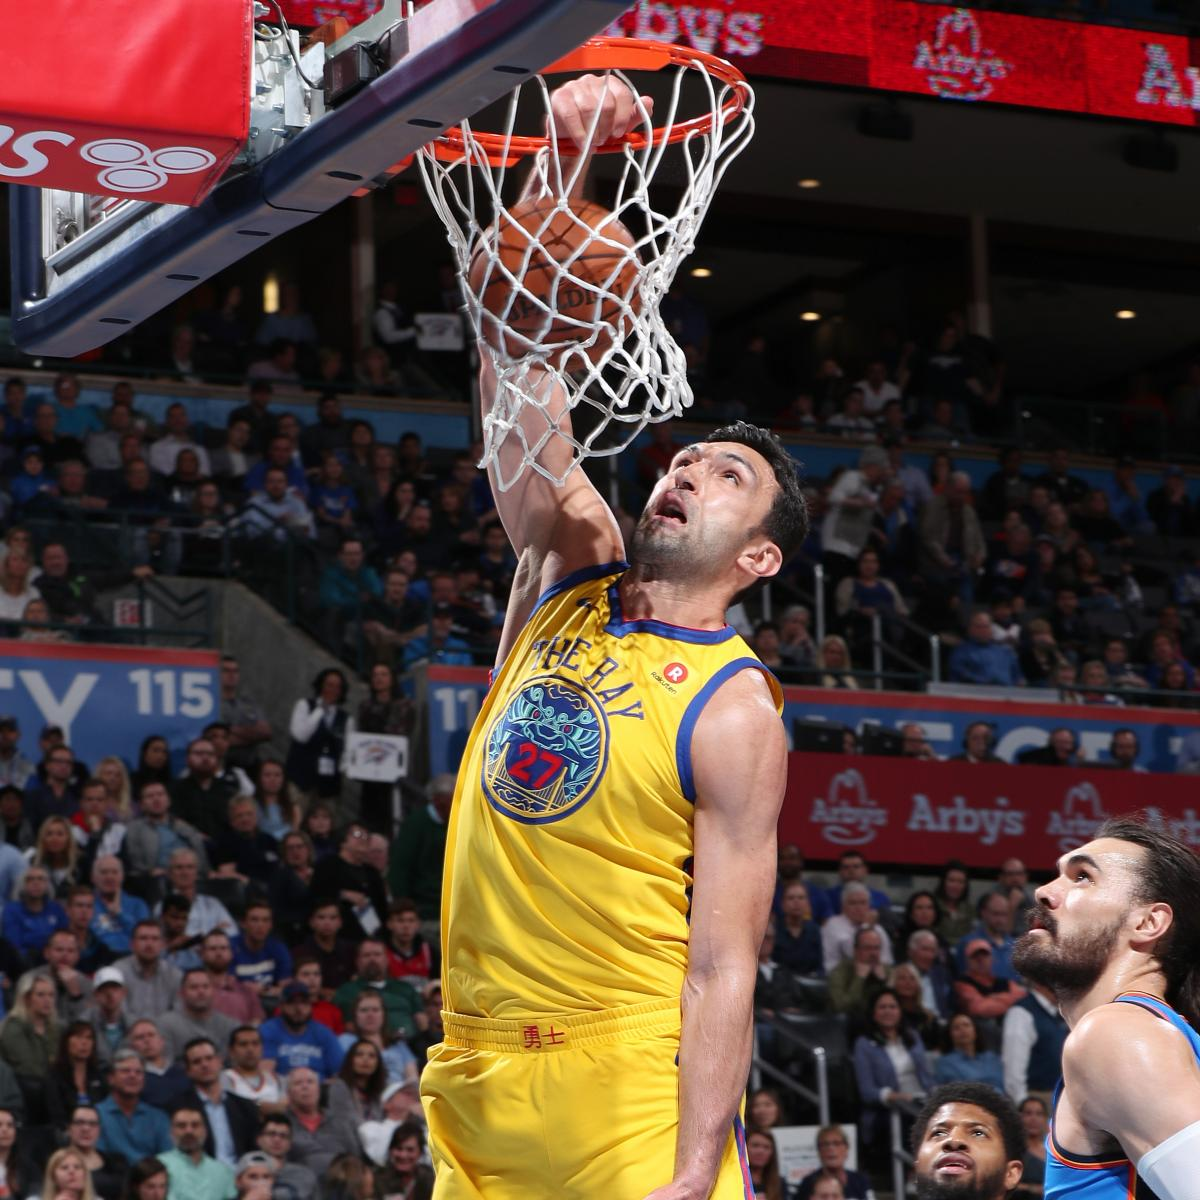 Report: Ex-Warrior Zaza Pachulia, Pistons Agree to 1-Year, $2.4M Contract